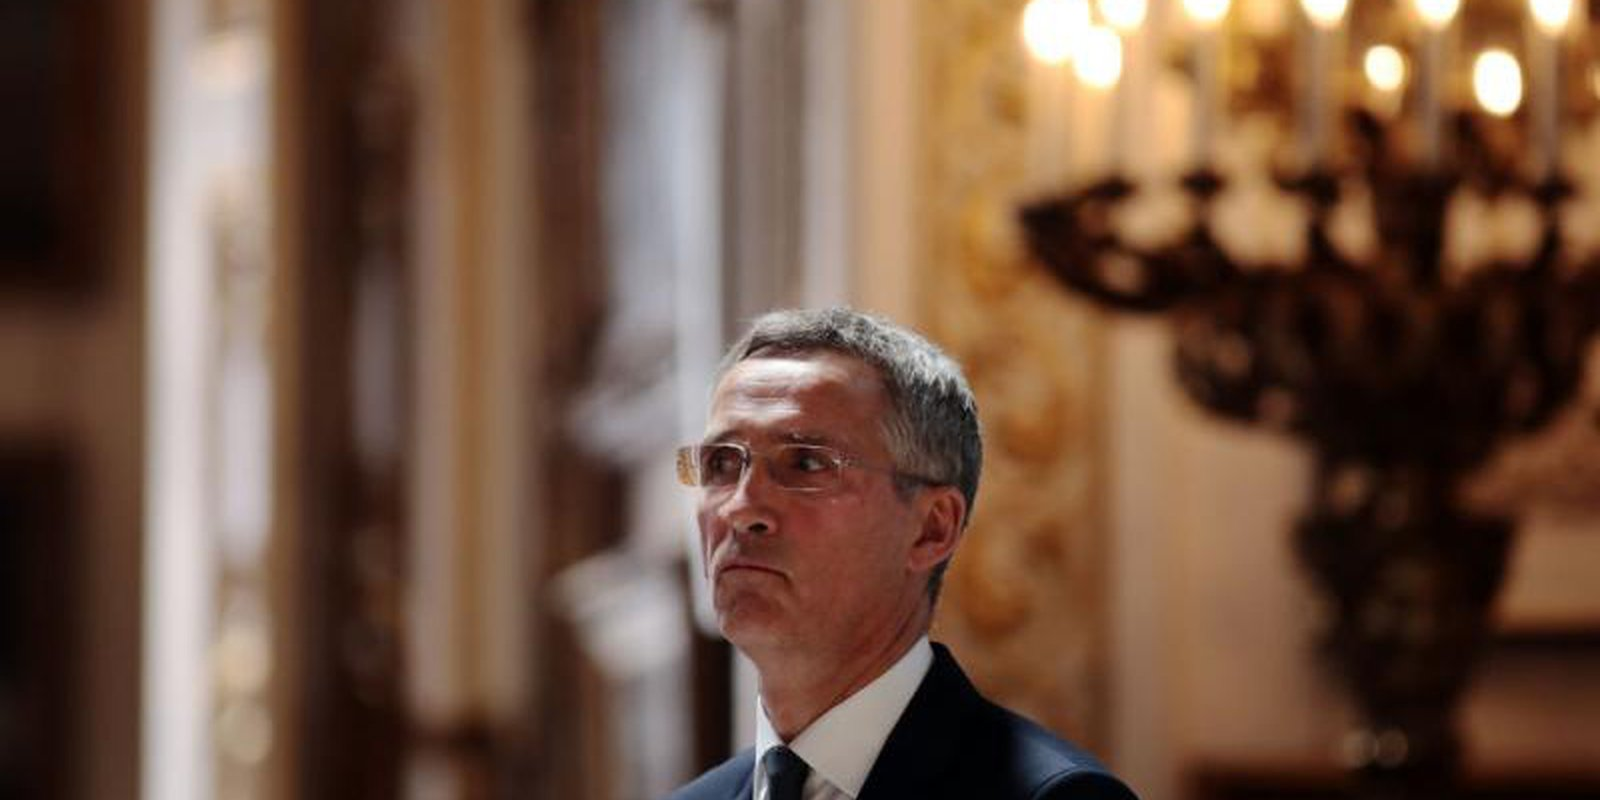 NATO Secretary-General Jens Stoltenberg delivers a speech in London before the NATO summit in June 2018. Photo: Getty Images.